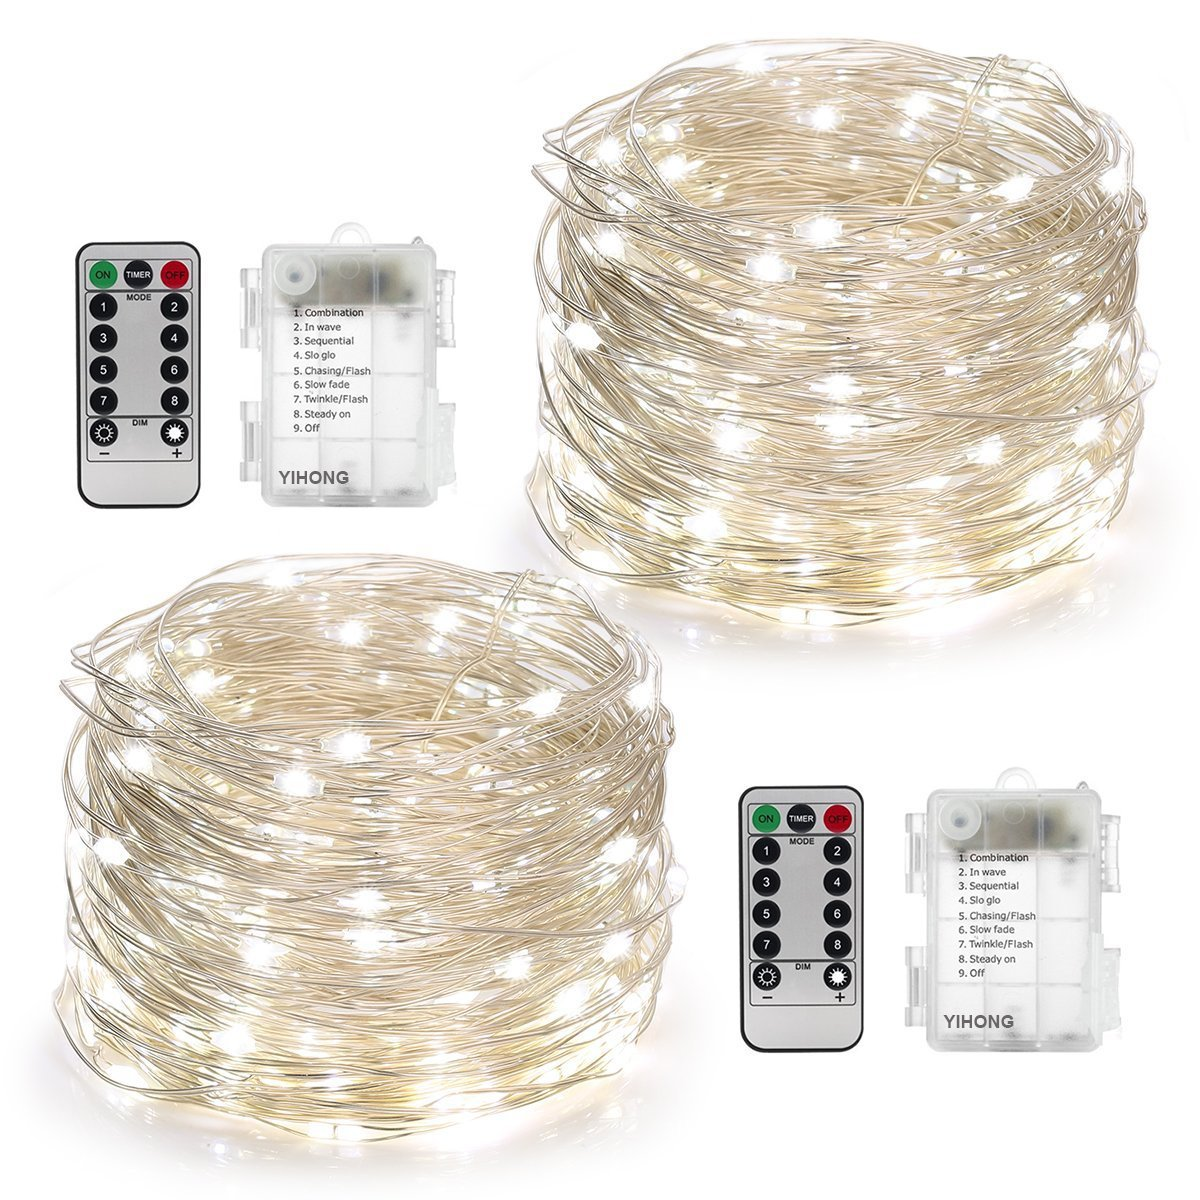 YIHONG 2 Set Fairy Lights Battery Operated 50LED String Lights Remote Control Timer Twinkle String Lights 8 Modes 16.4 Feet Silver Wire Firefly Lights --White